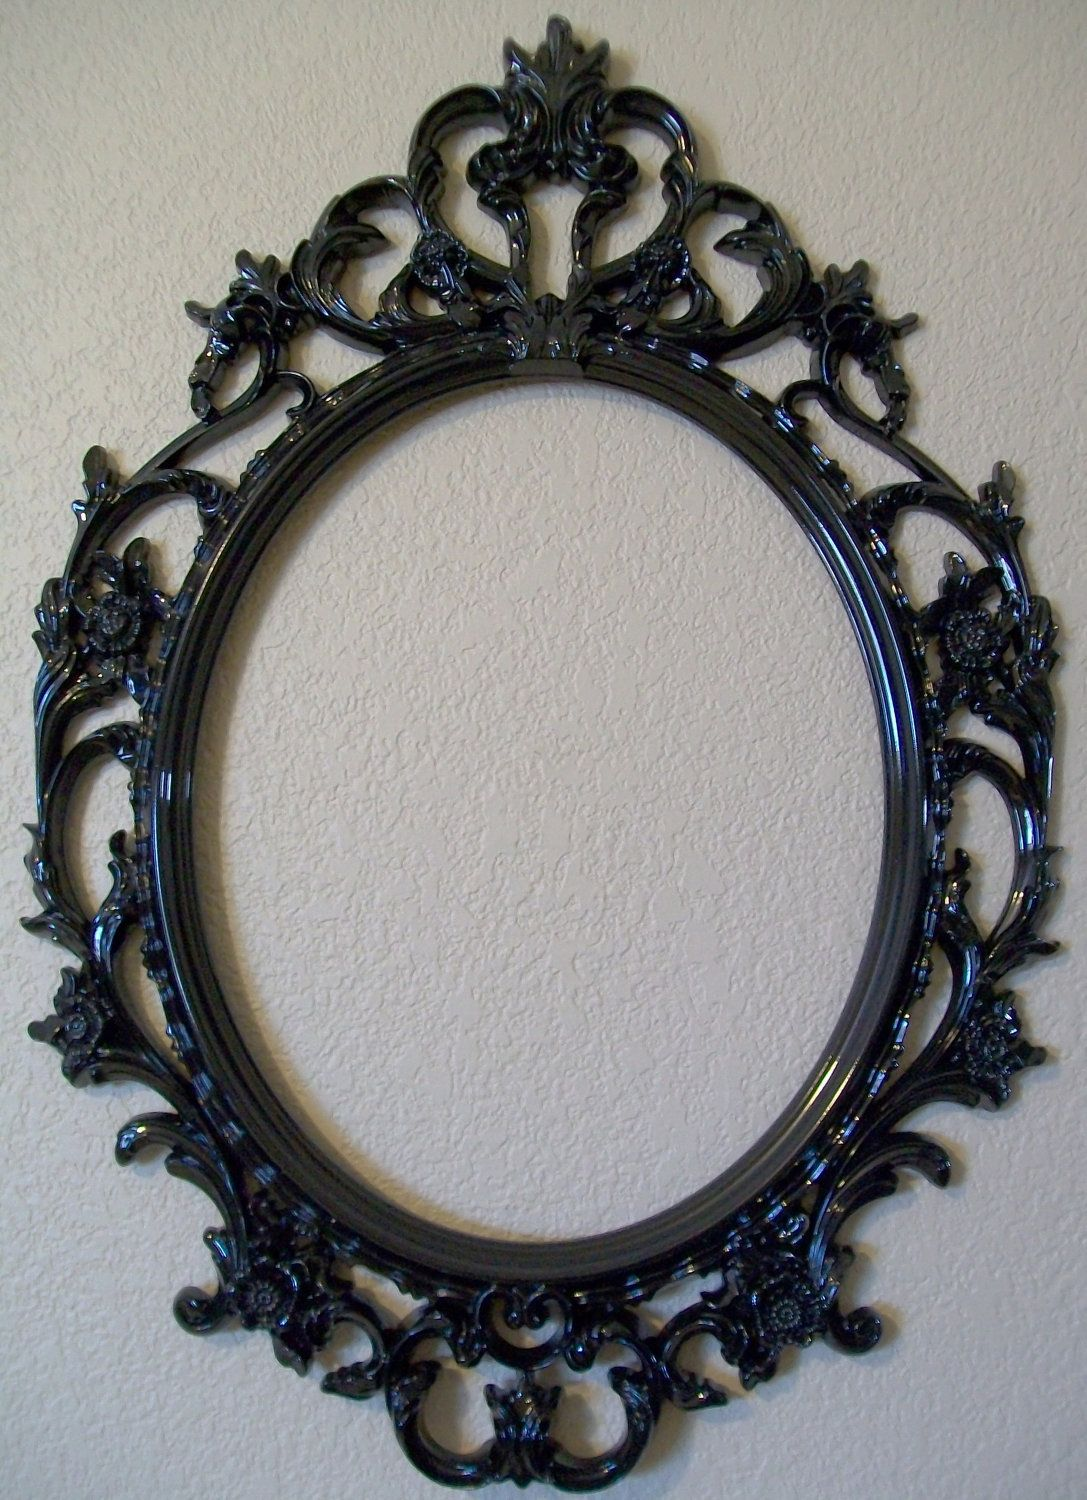 Large Black Ornate Frame Ornate Frame Blog Design Inspiration Framed Tattoo